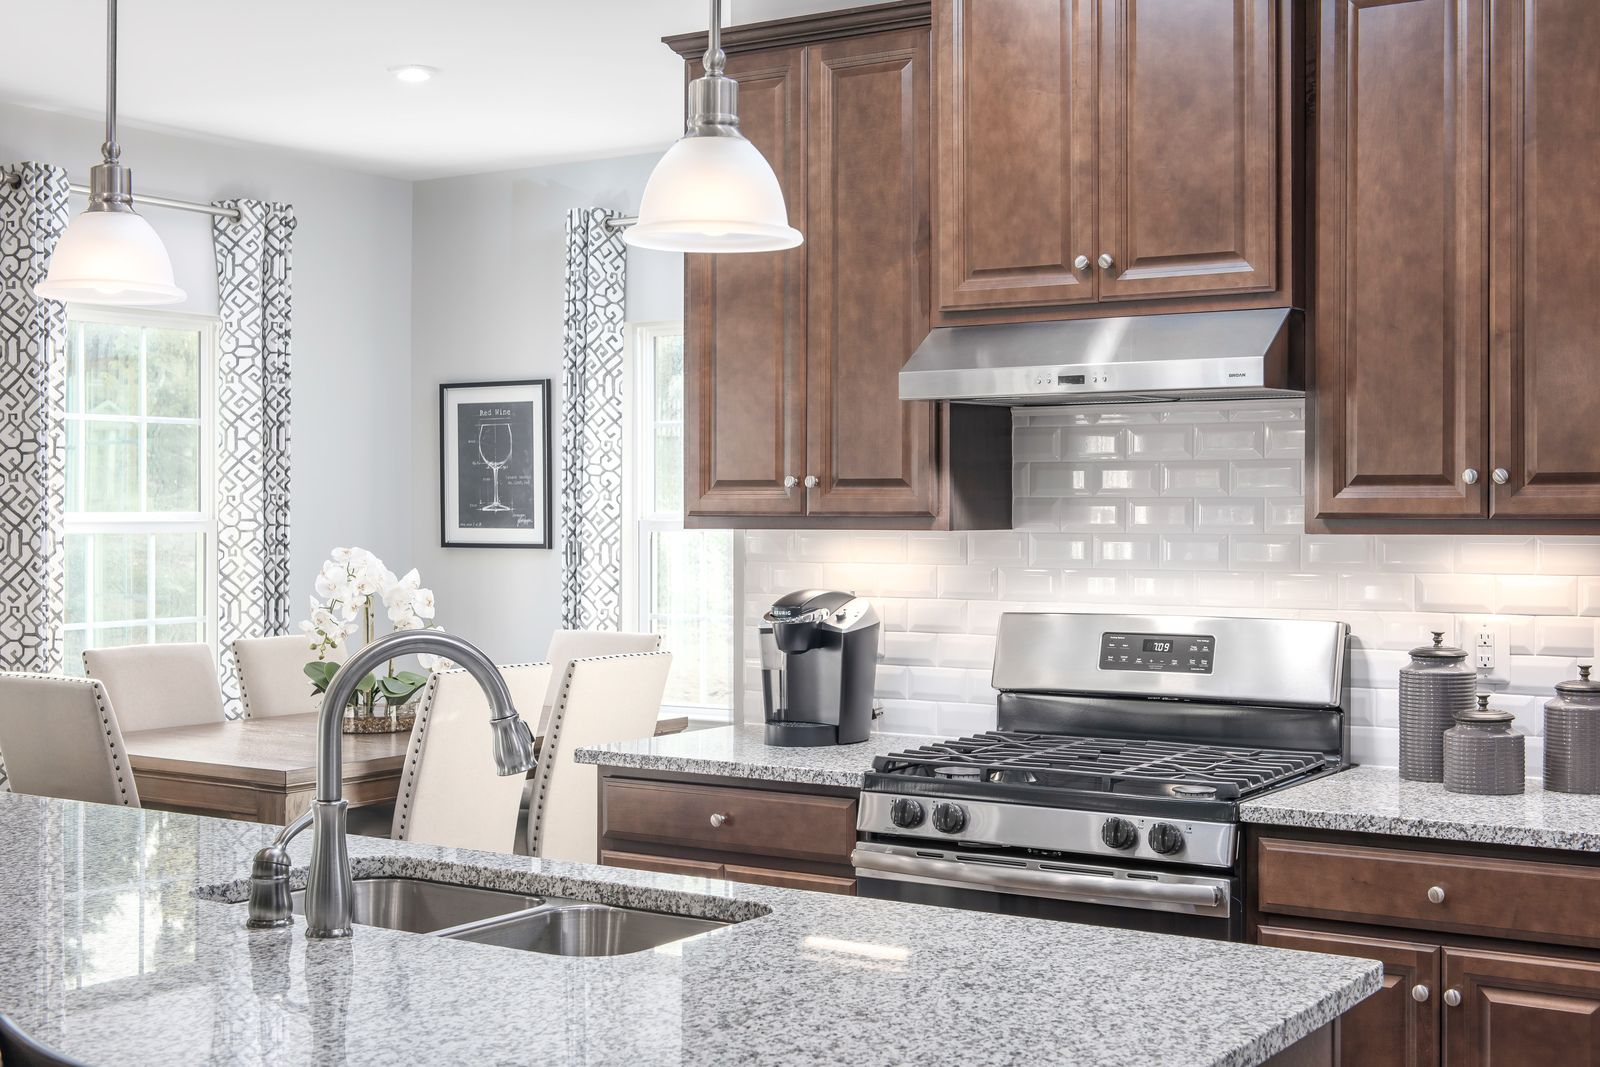 Kitchen featured in the Columbia By Ryan Homes in Washington, VA